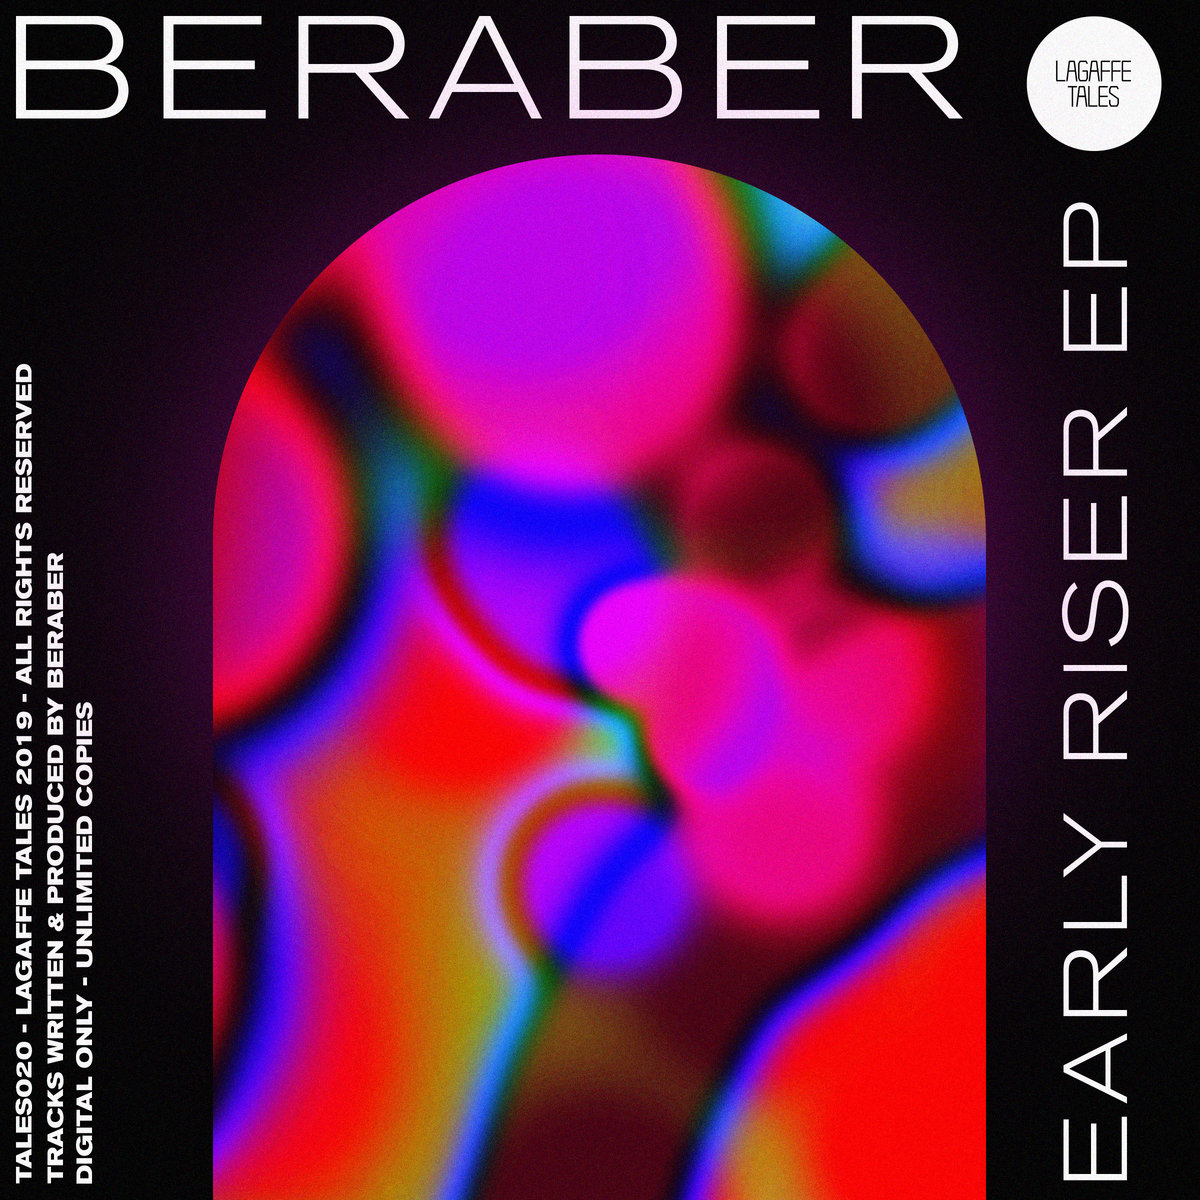 Early Riser >> Tales020 Beraber Early Riser Ep Lagaffe Tales